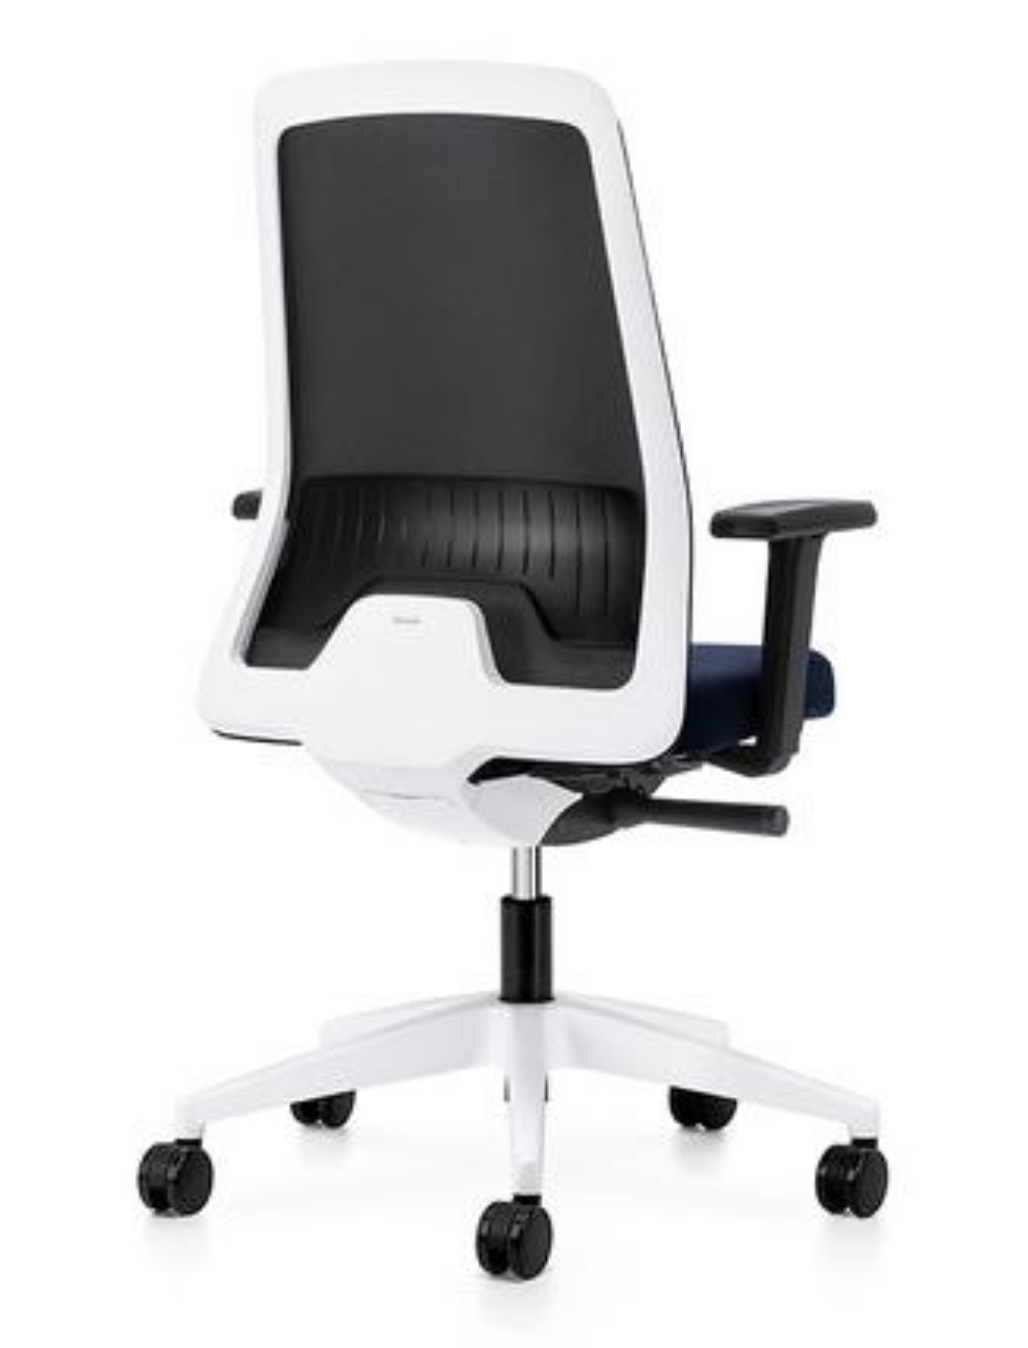 4 Ergonomic Swivel Chairs that are Guaranteed to Improve your work life!